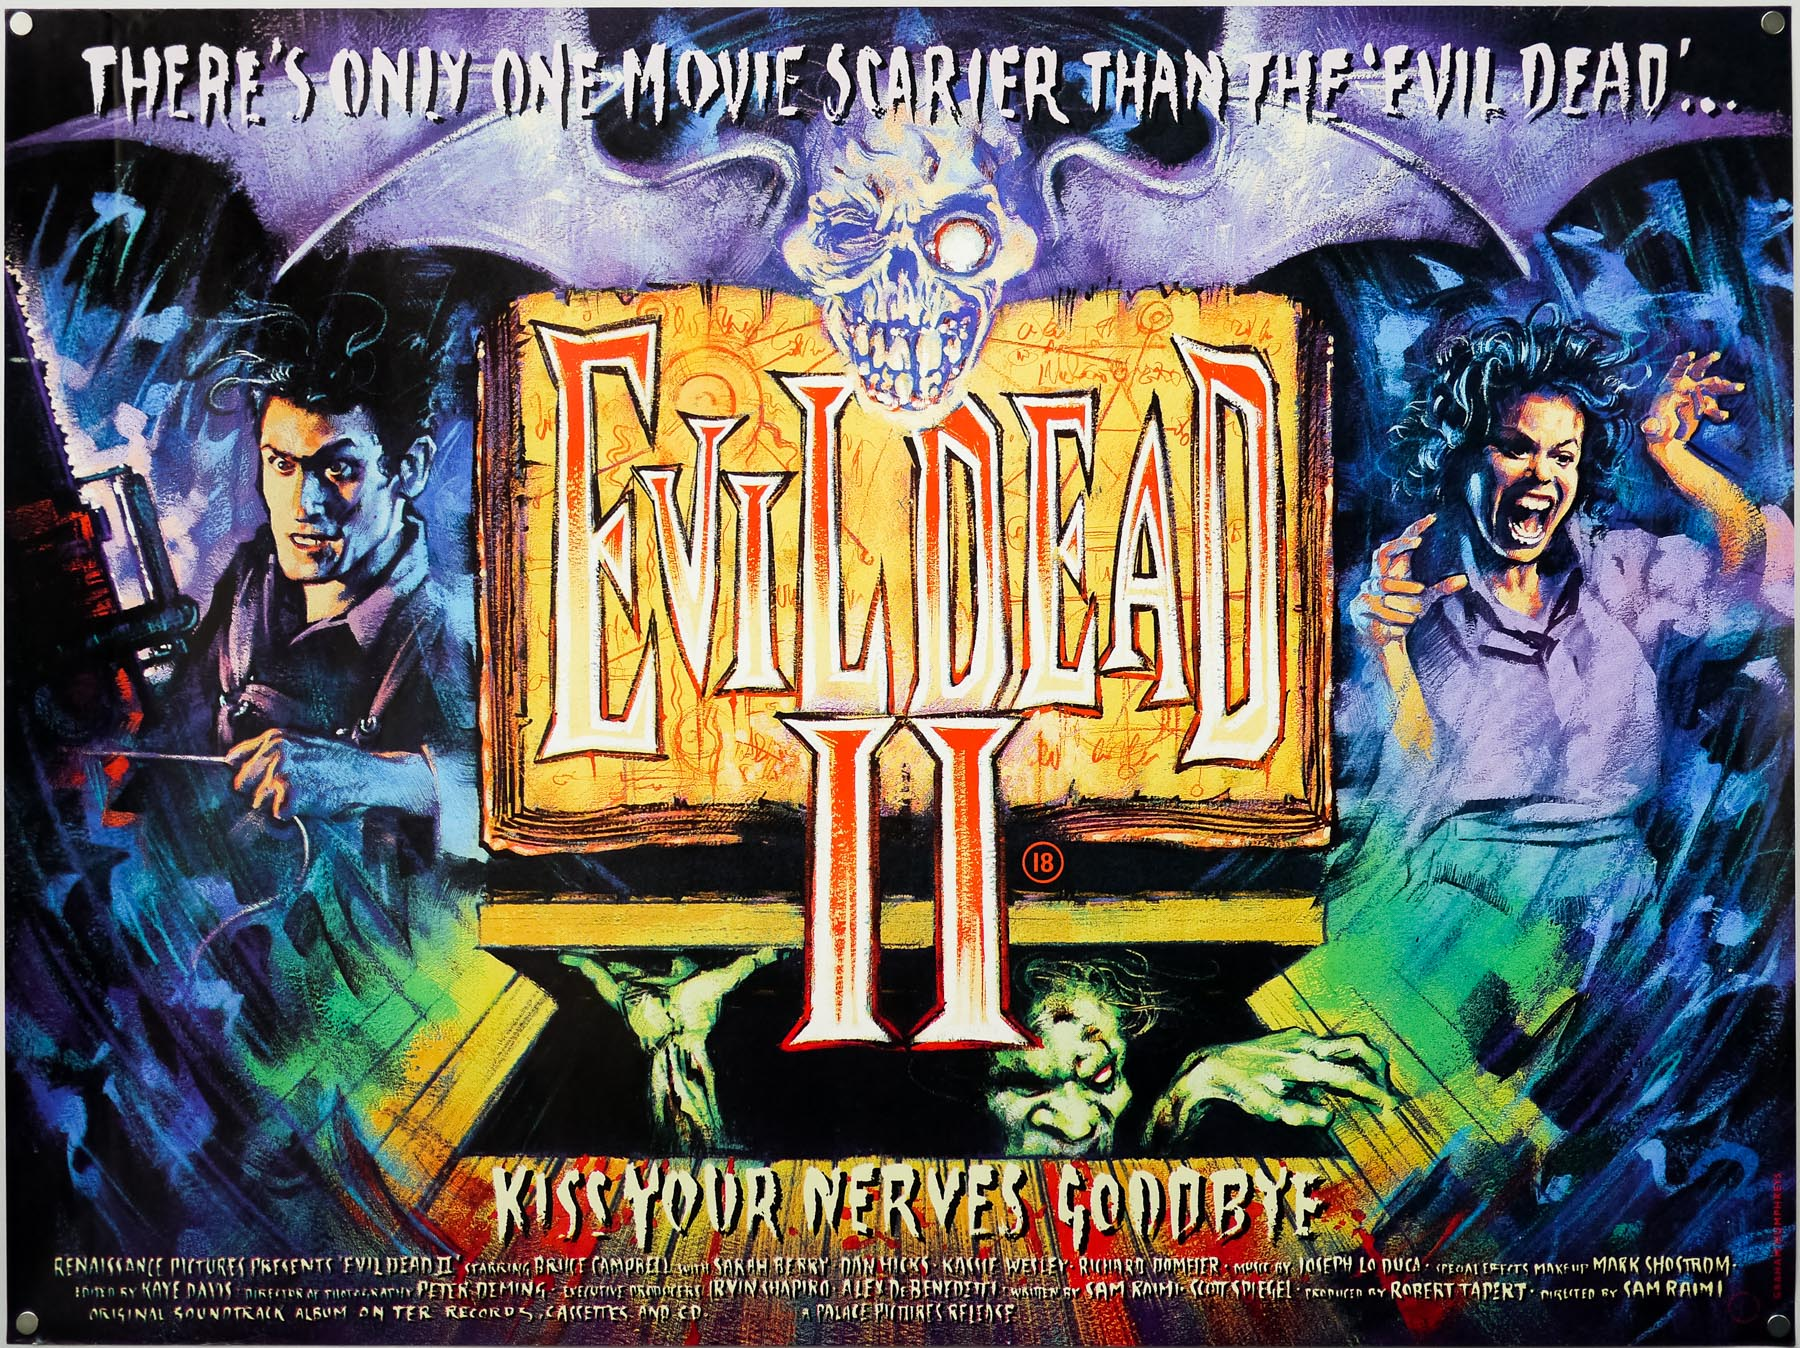 The UK quad for Evil Dead II, by Graham Humphreys